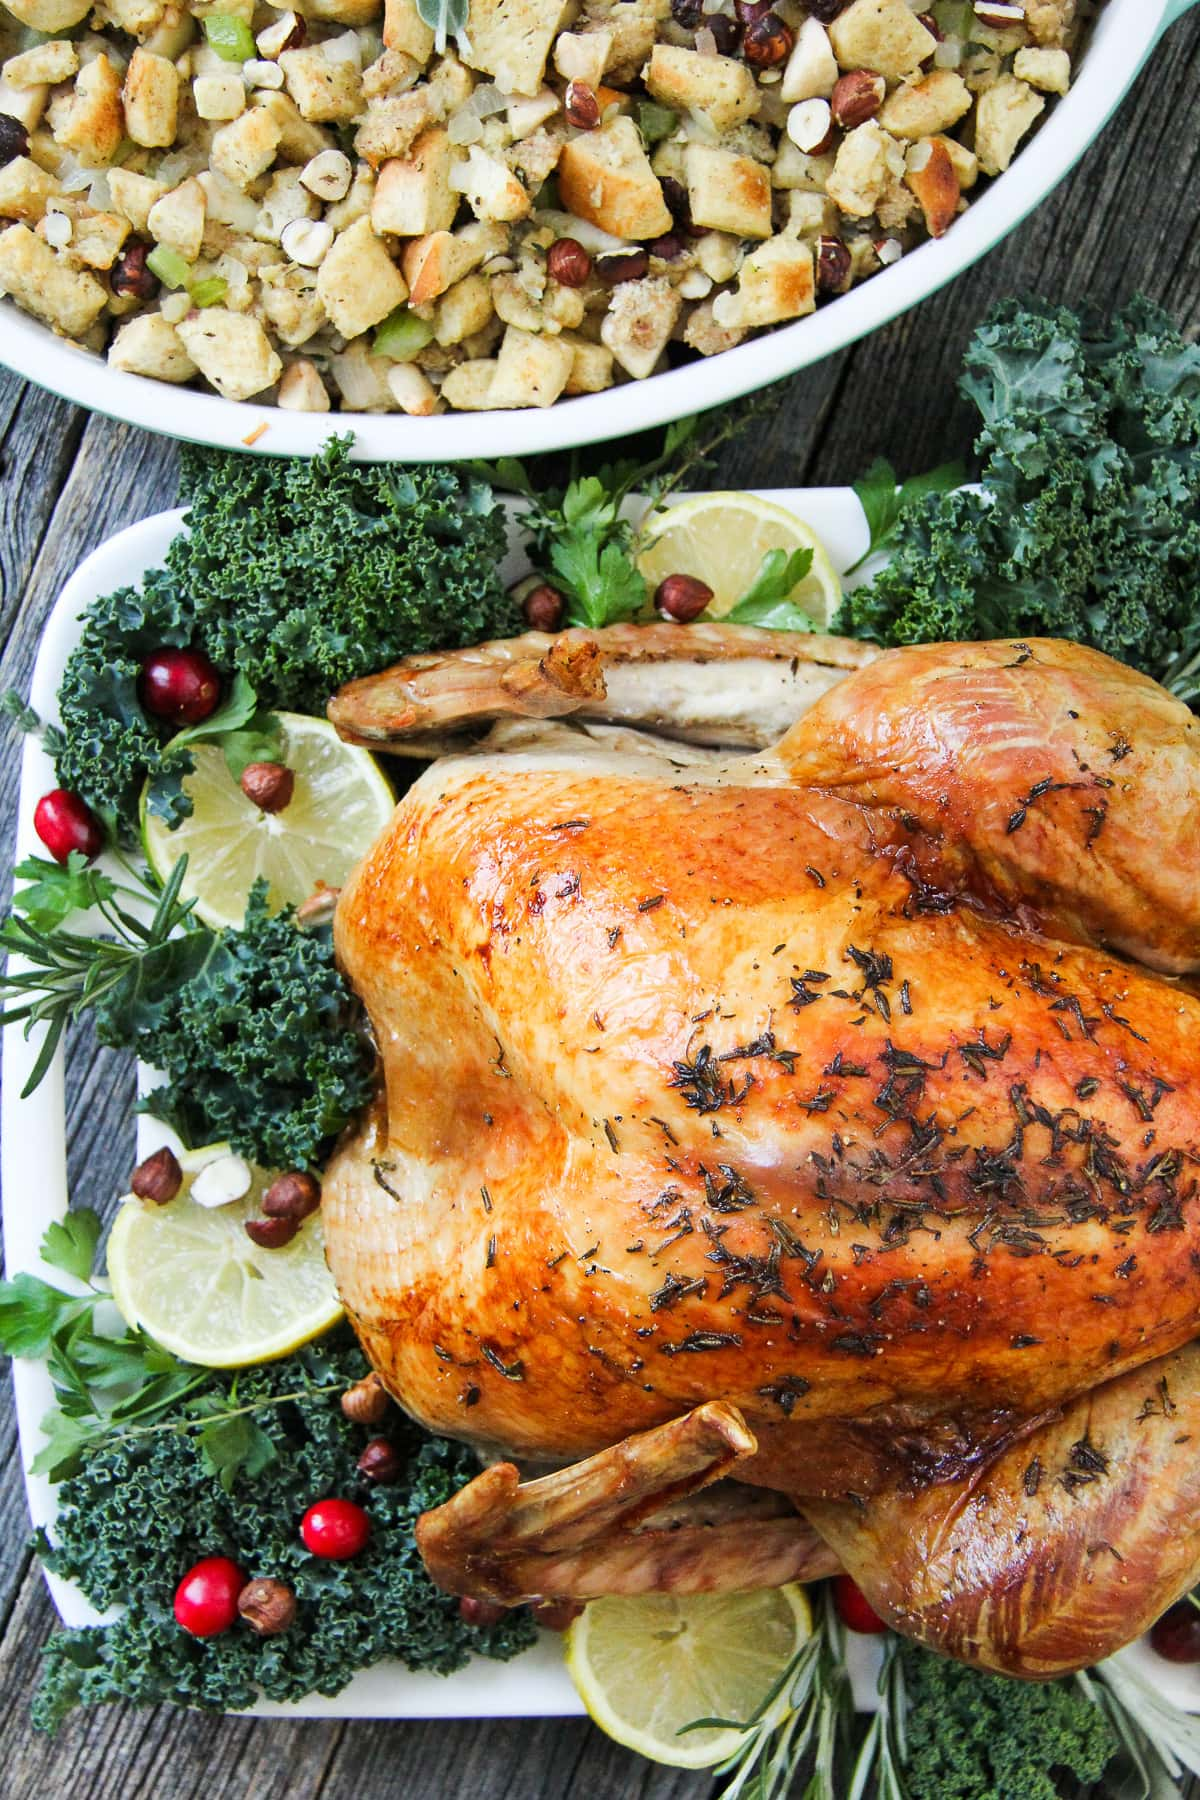 Lemon Rosemary Roasted Turkey with Savoury Hazelnut Stuffing